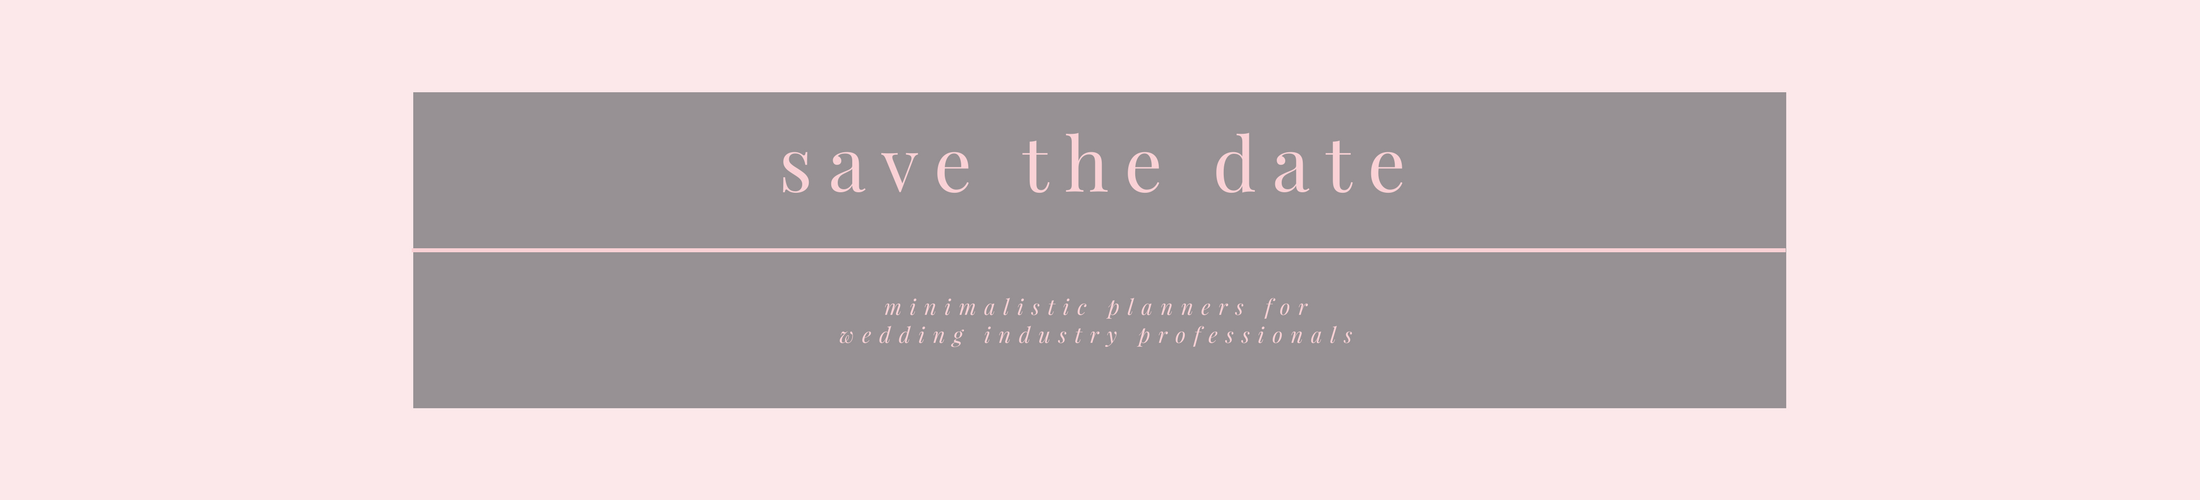 Planner inserts for Wedding Industry Professionals by Save the Date